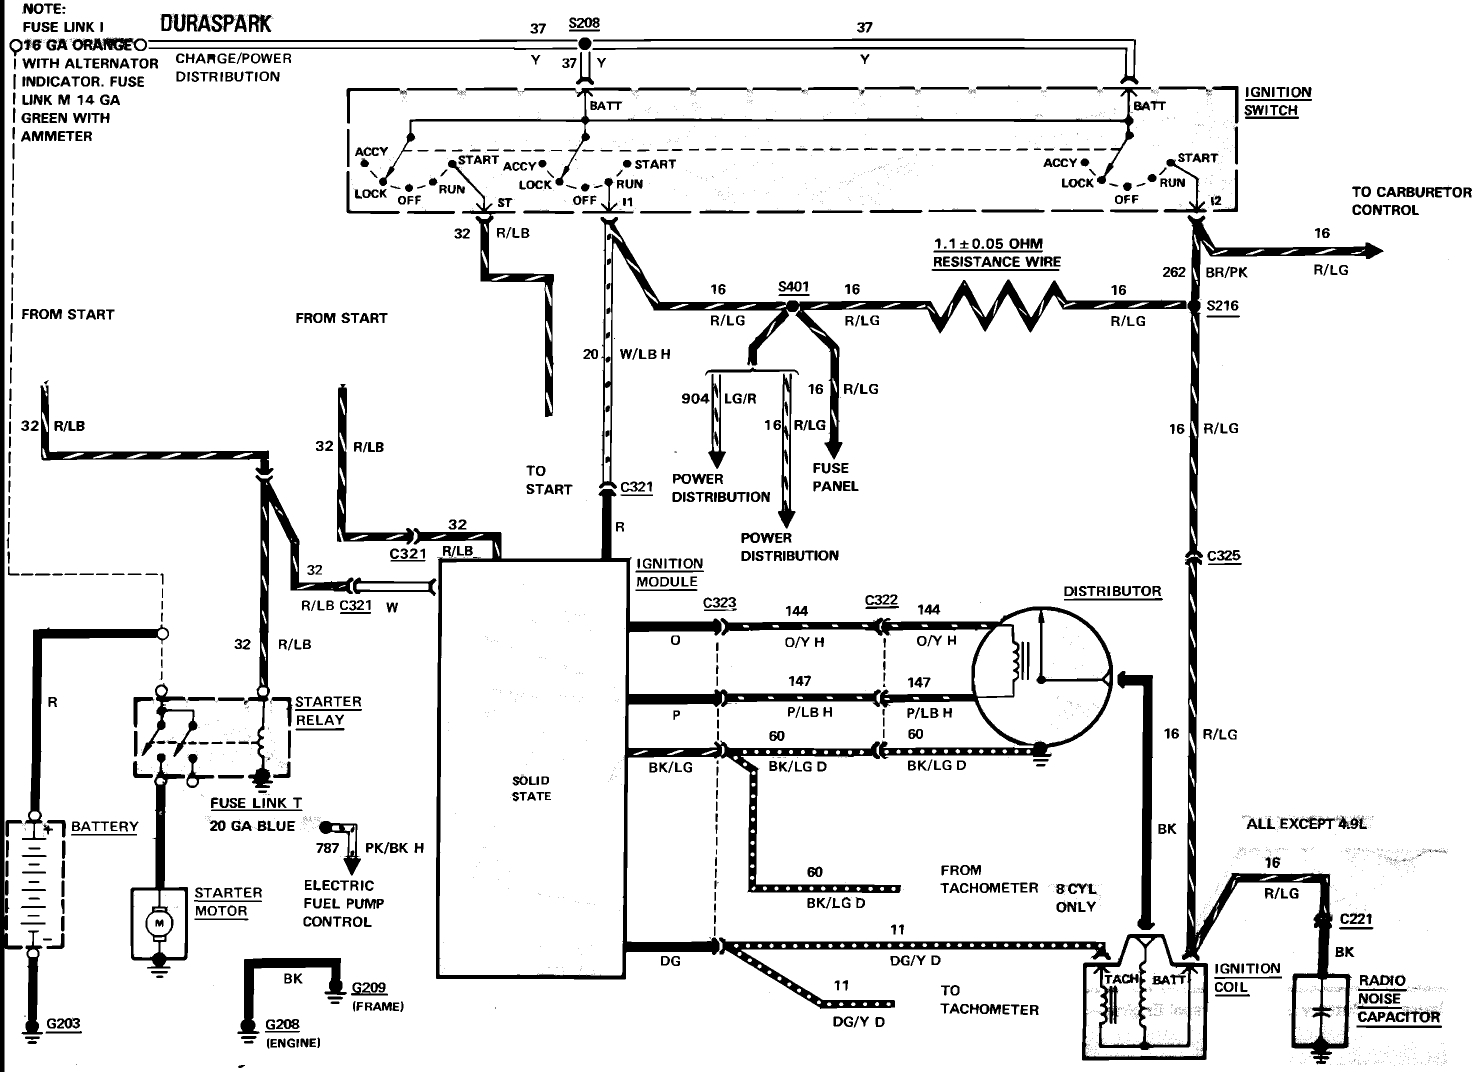 1986 f250 radio wiring diagram 1989 ford f150 ignition    wiring       diagram    free    wiring       diagram     1989 ford f150 ignition    wiring       diagram    free    wiring       diagram